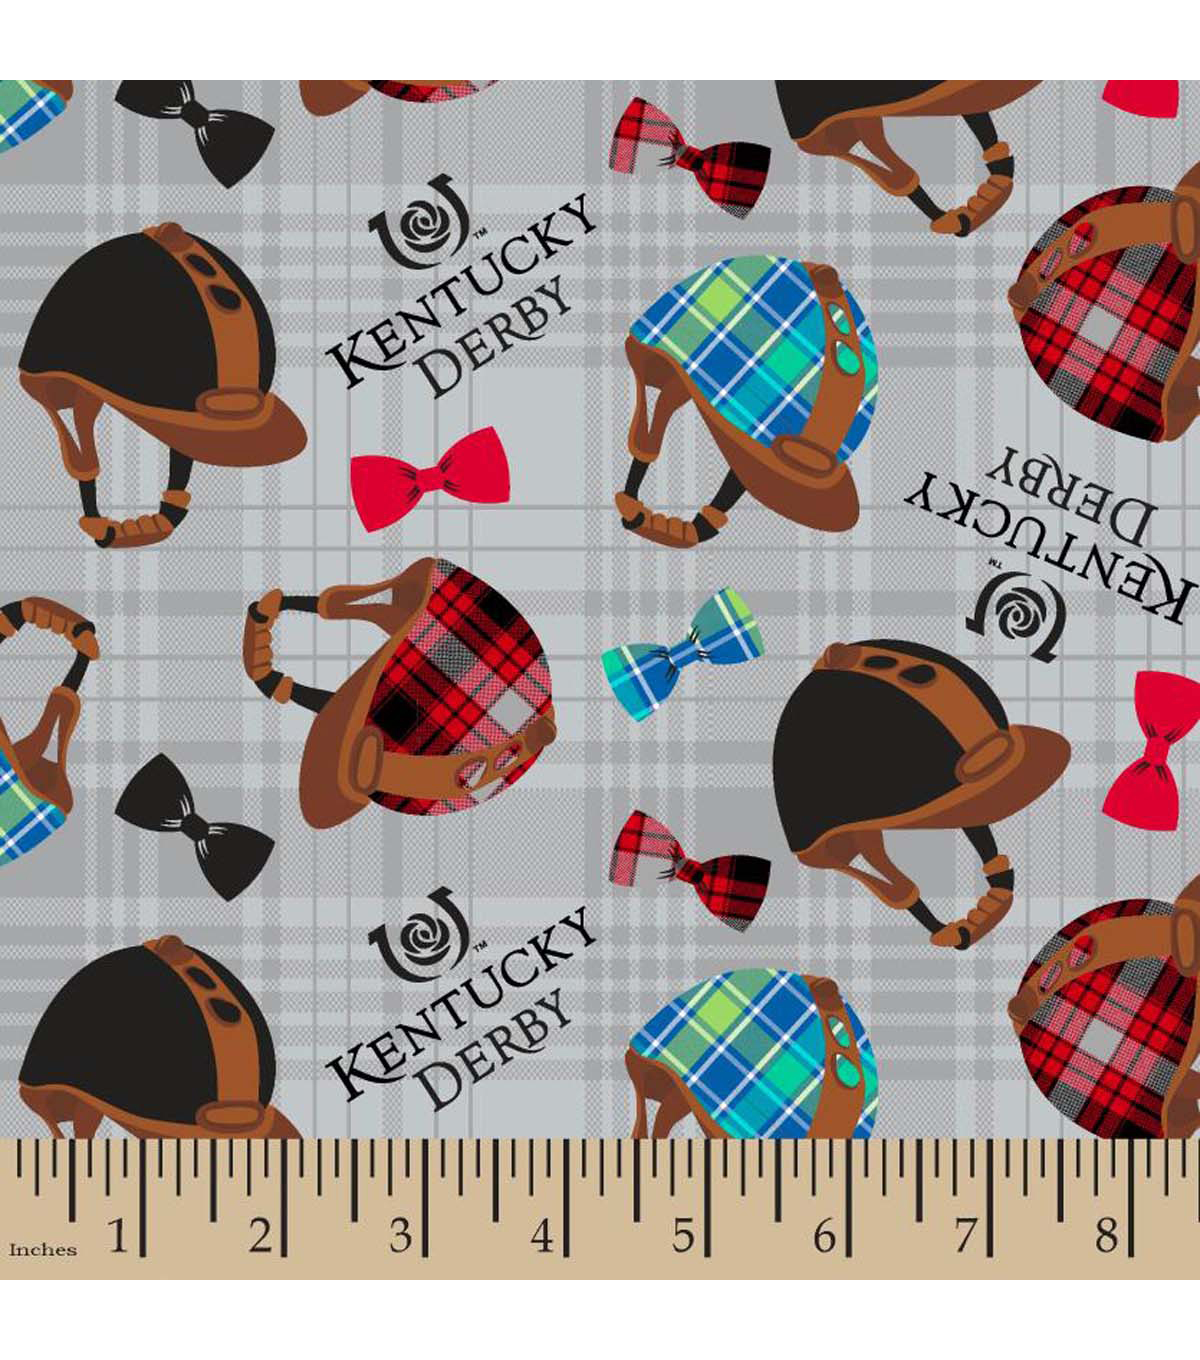 Kentucky Derby Helmets And Bows Cotton Fabric